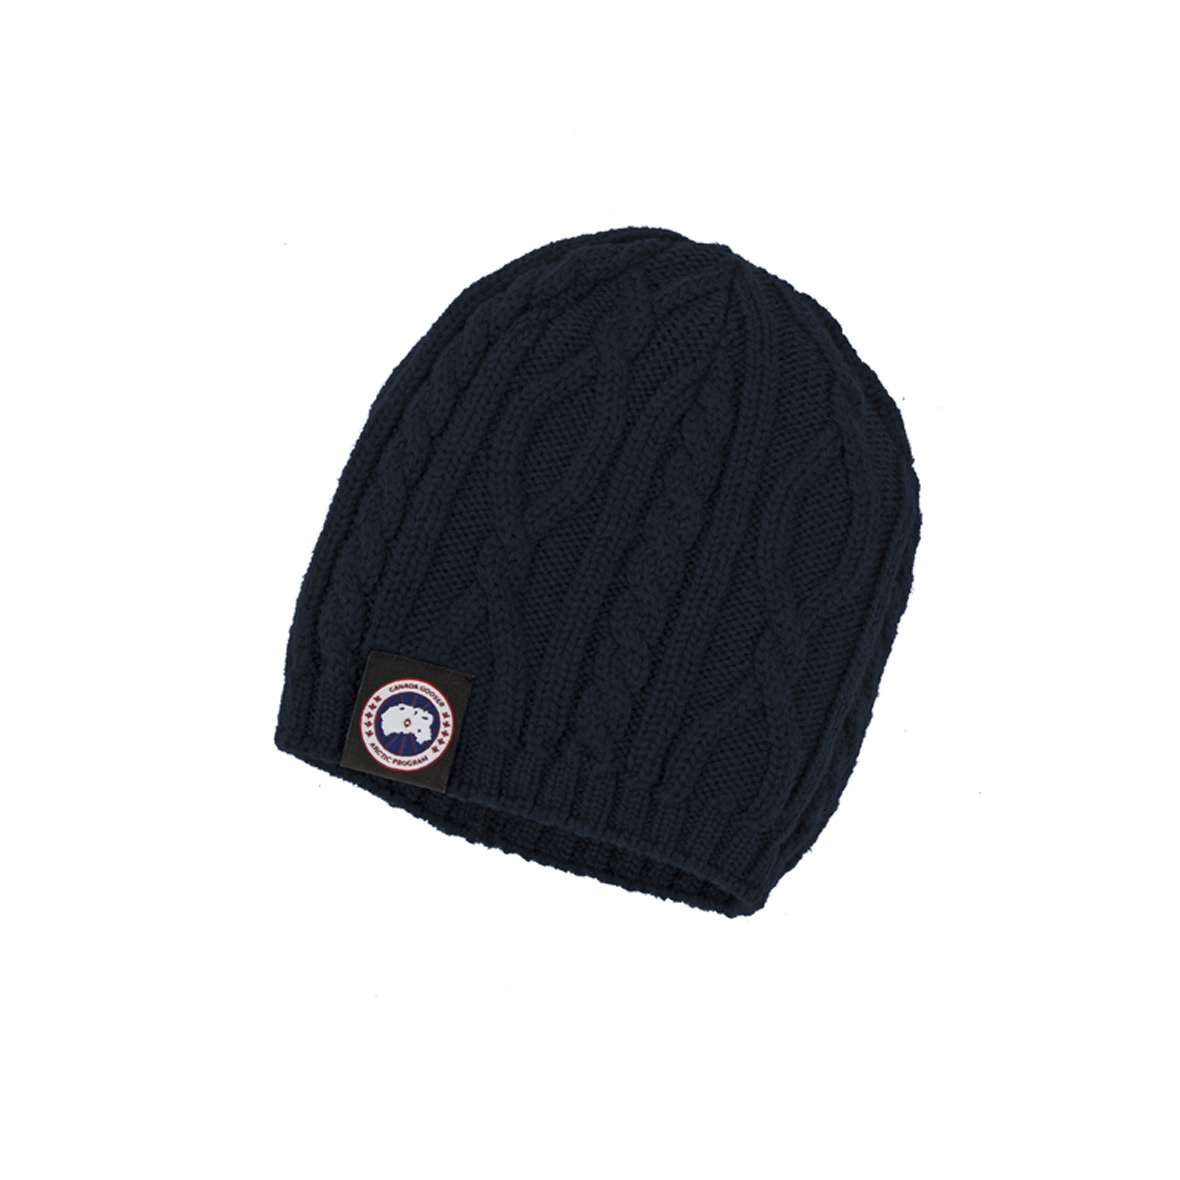 Canada Goose Unisex Merino Cable-Knit Beanie NAVY